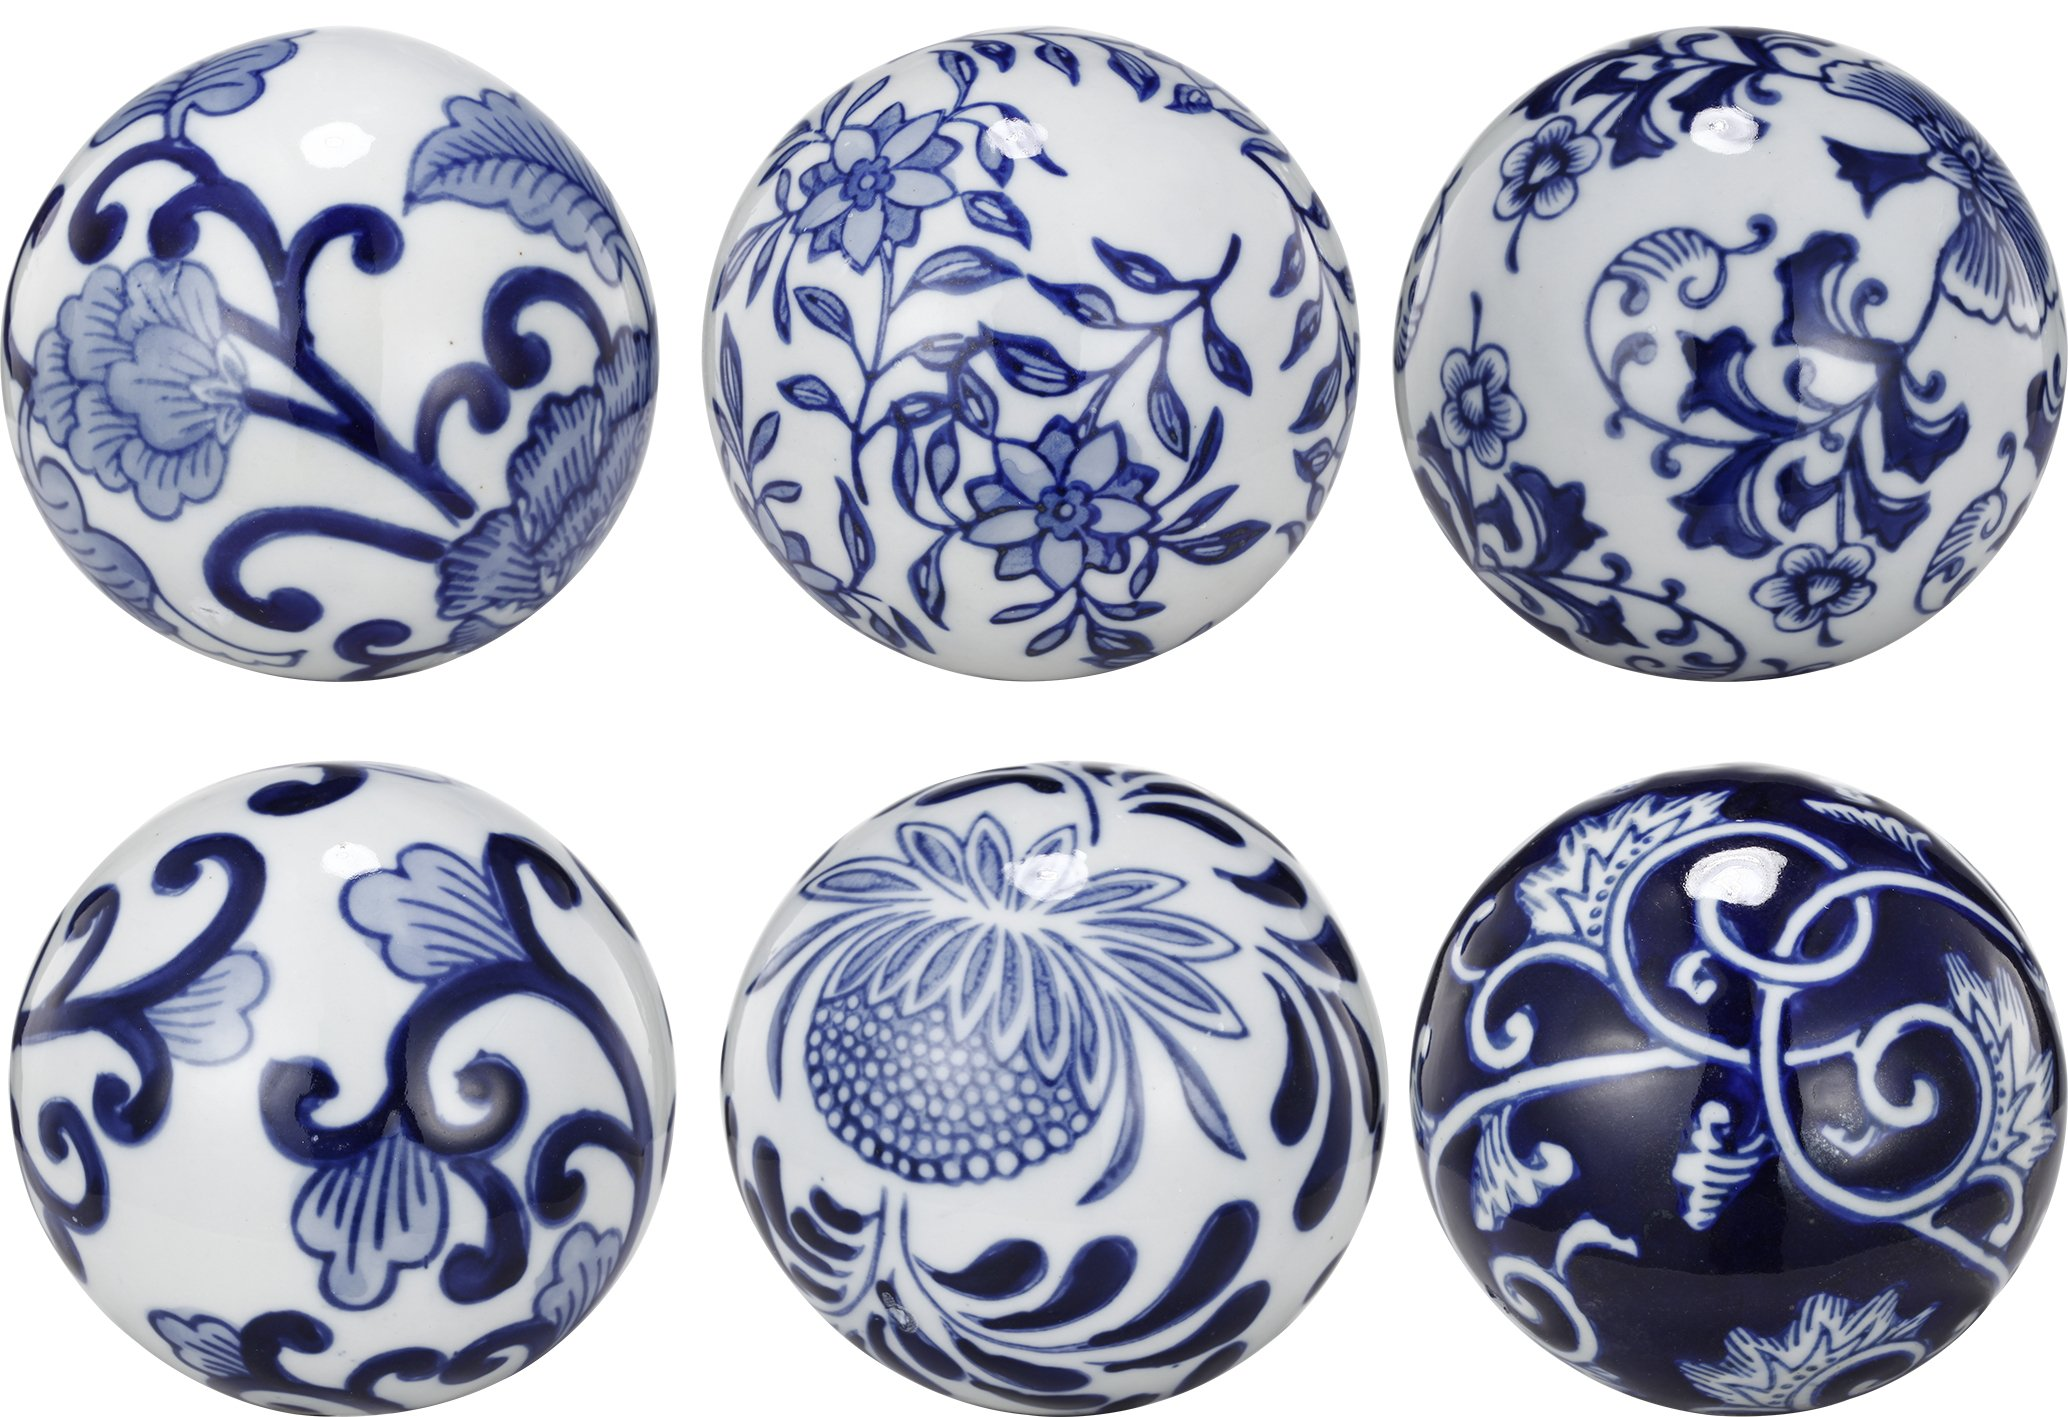 A&B Home Set of 6 Decorative Orbs by A&B Home